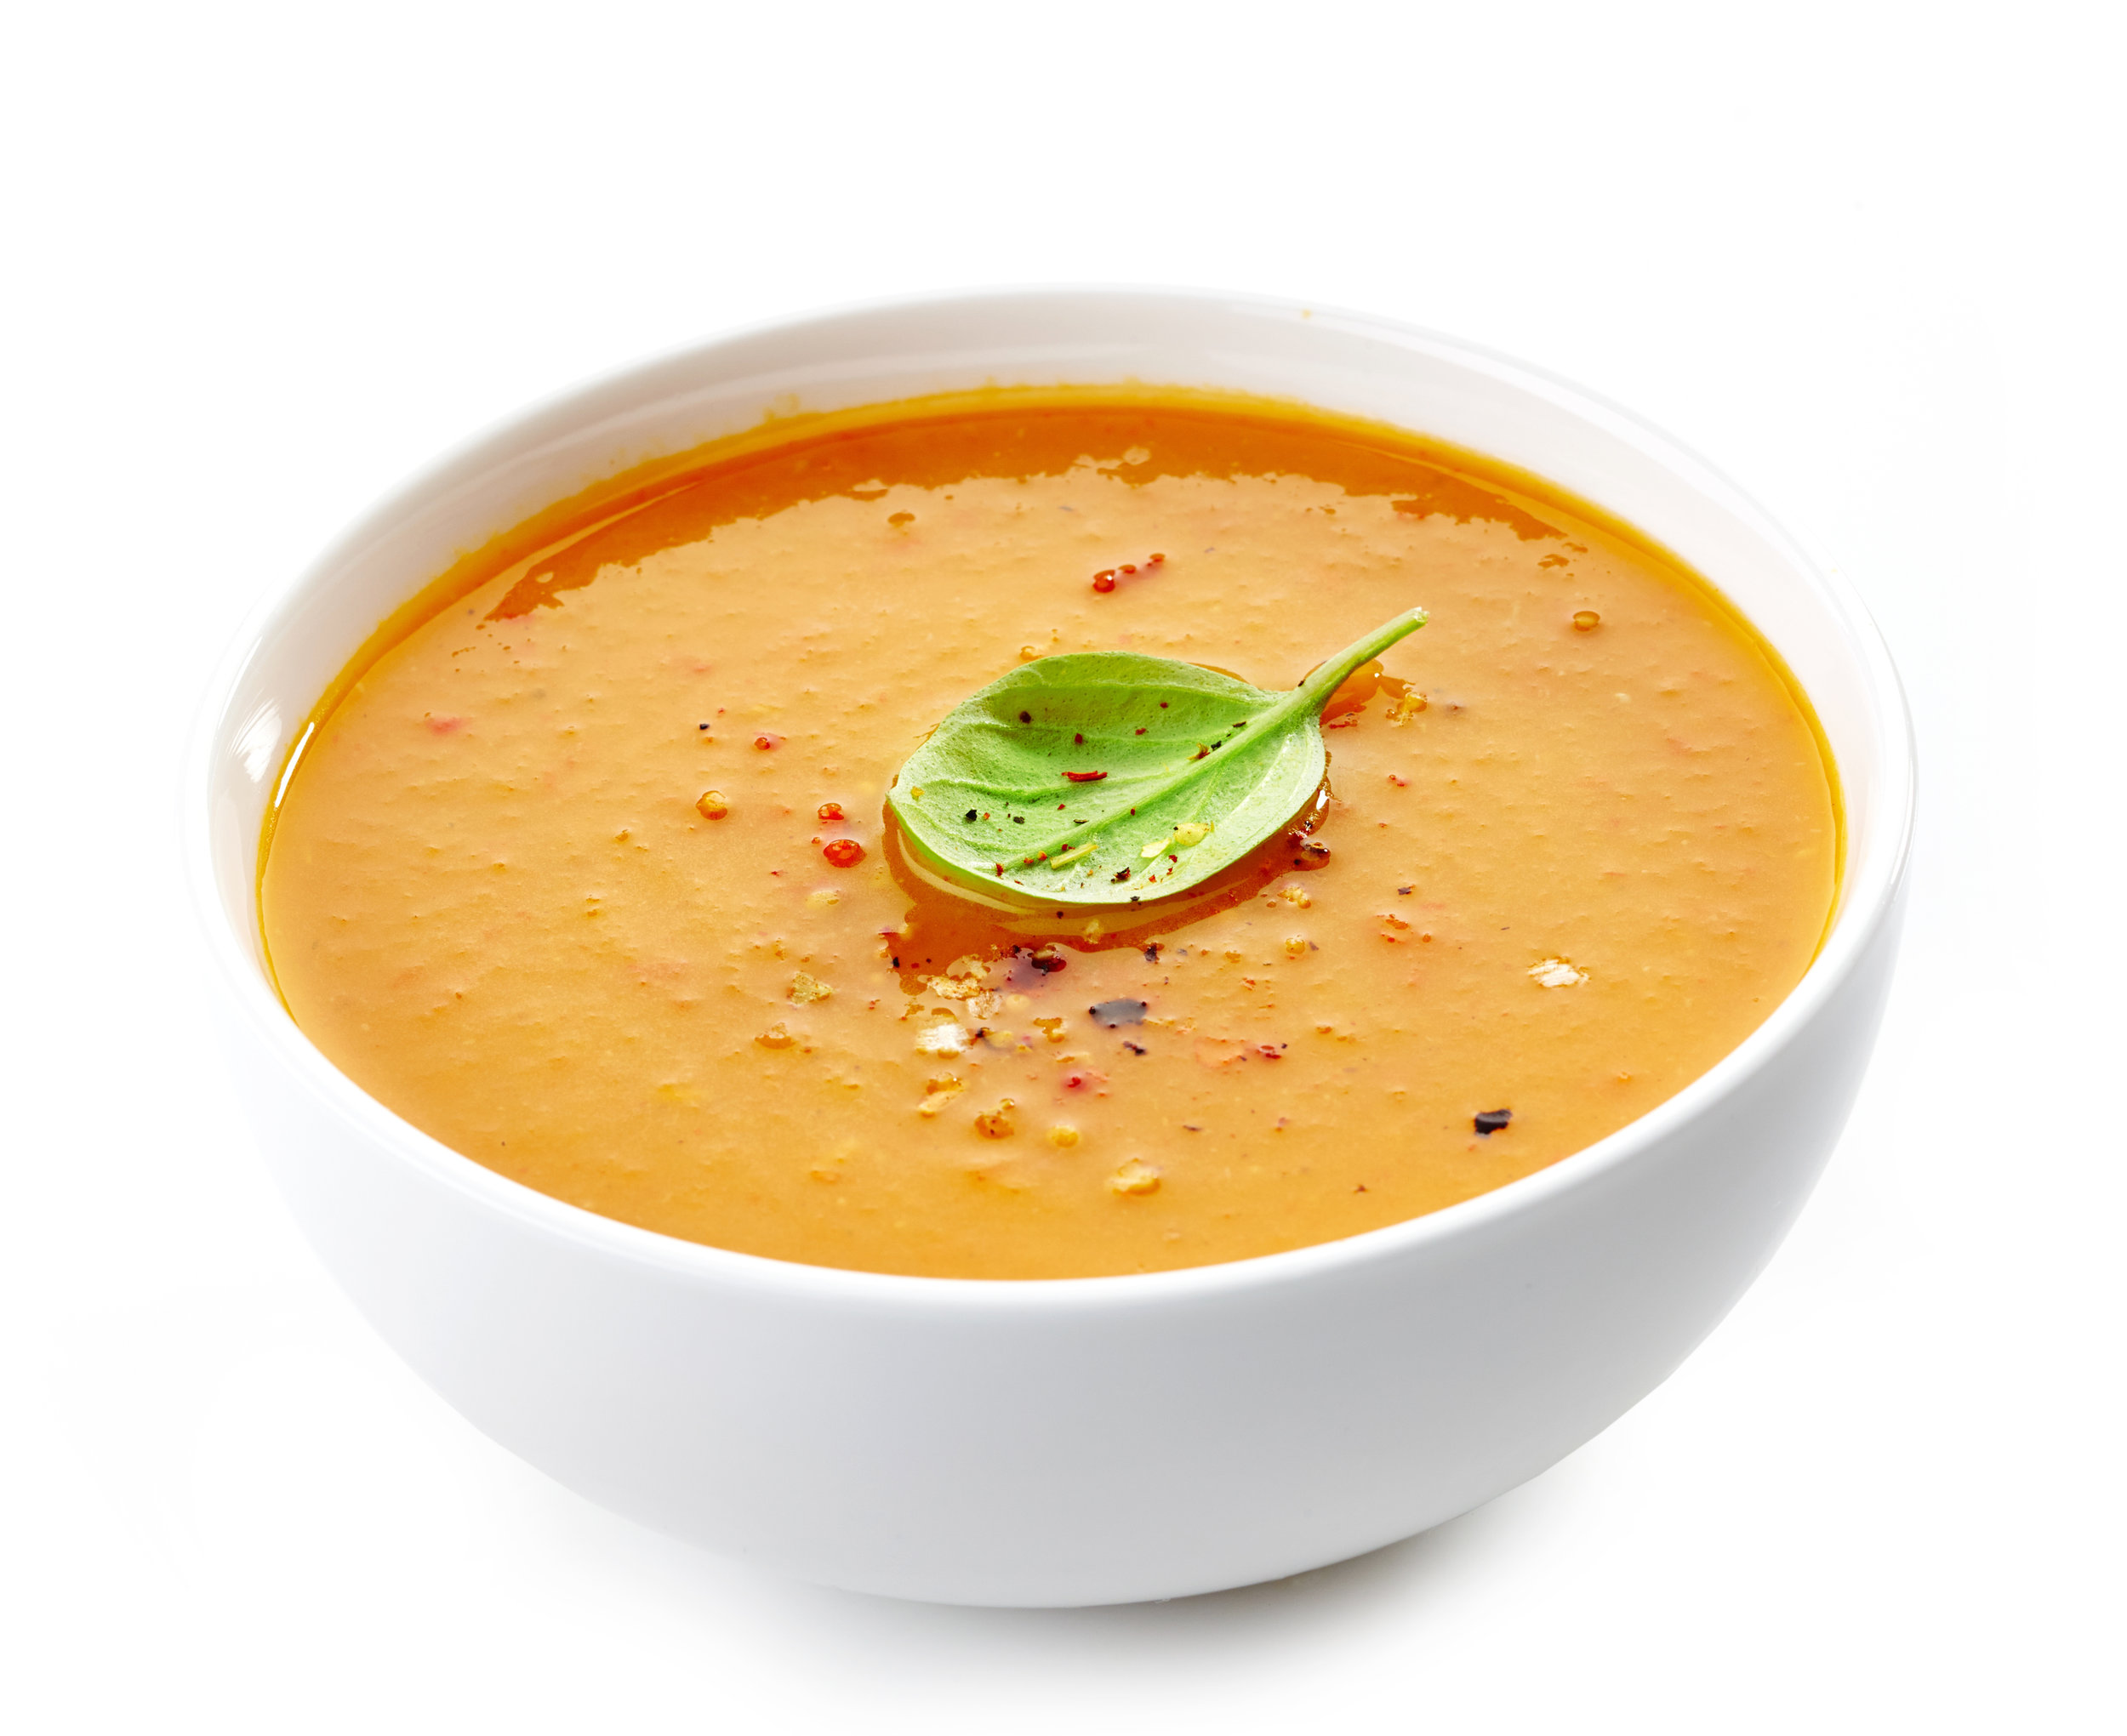 I couldn't decide which fall vegetable I enjoy more, so I ended up adding both the pumpkin and butternut squash into this soup! This is a delicious, creamy and vegan soup!  Although most soups I make involve just throwing vegetables together, this soup takes a few more steps, but definitely worth it.